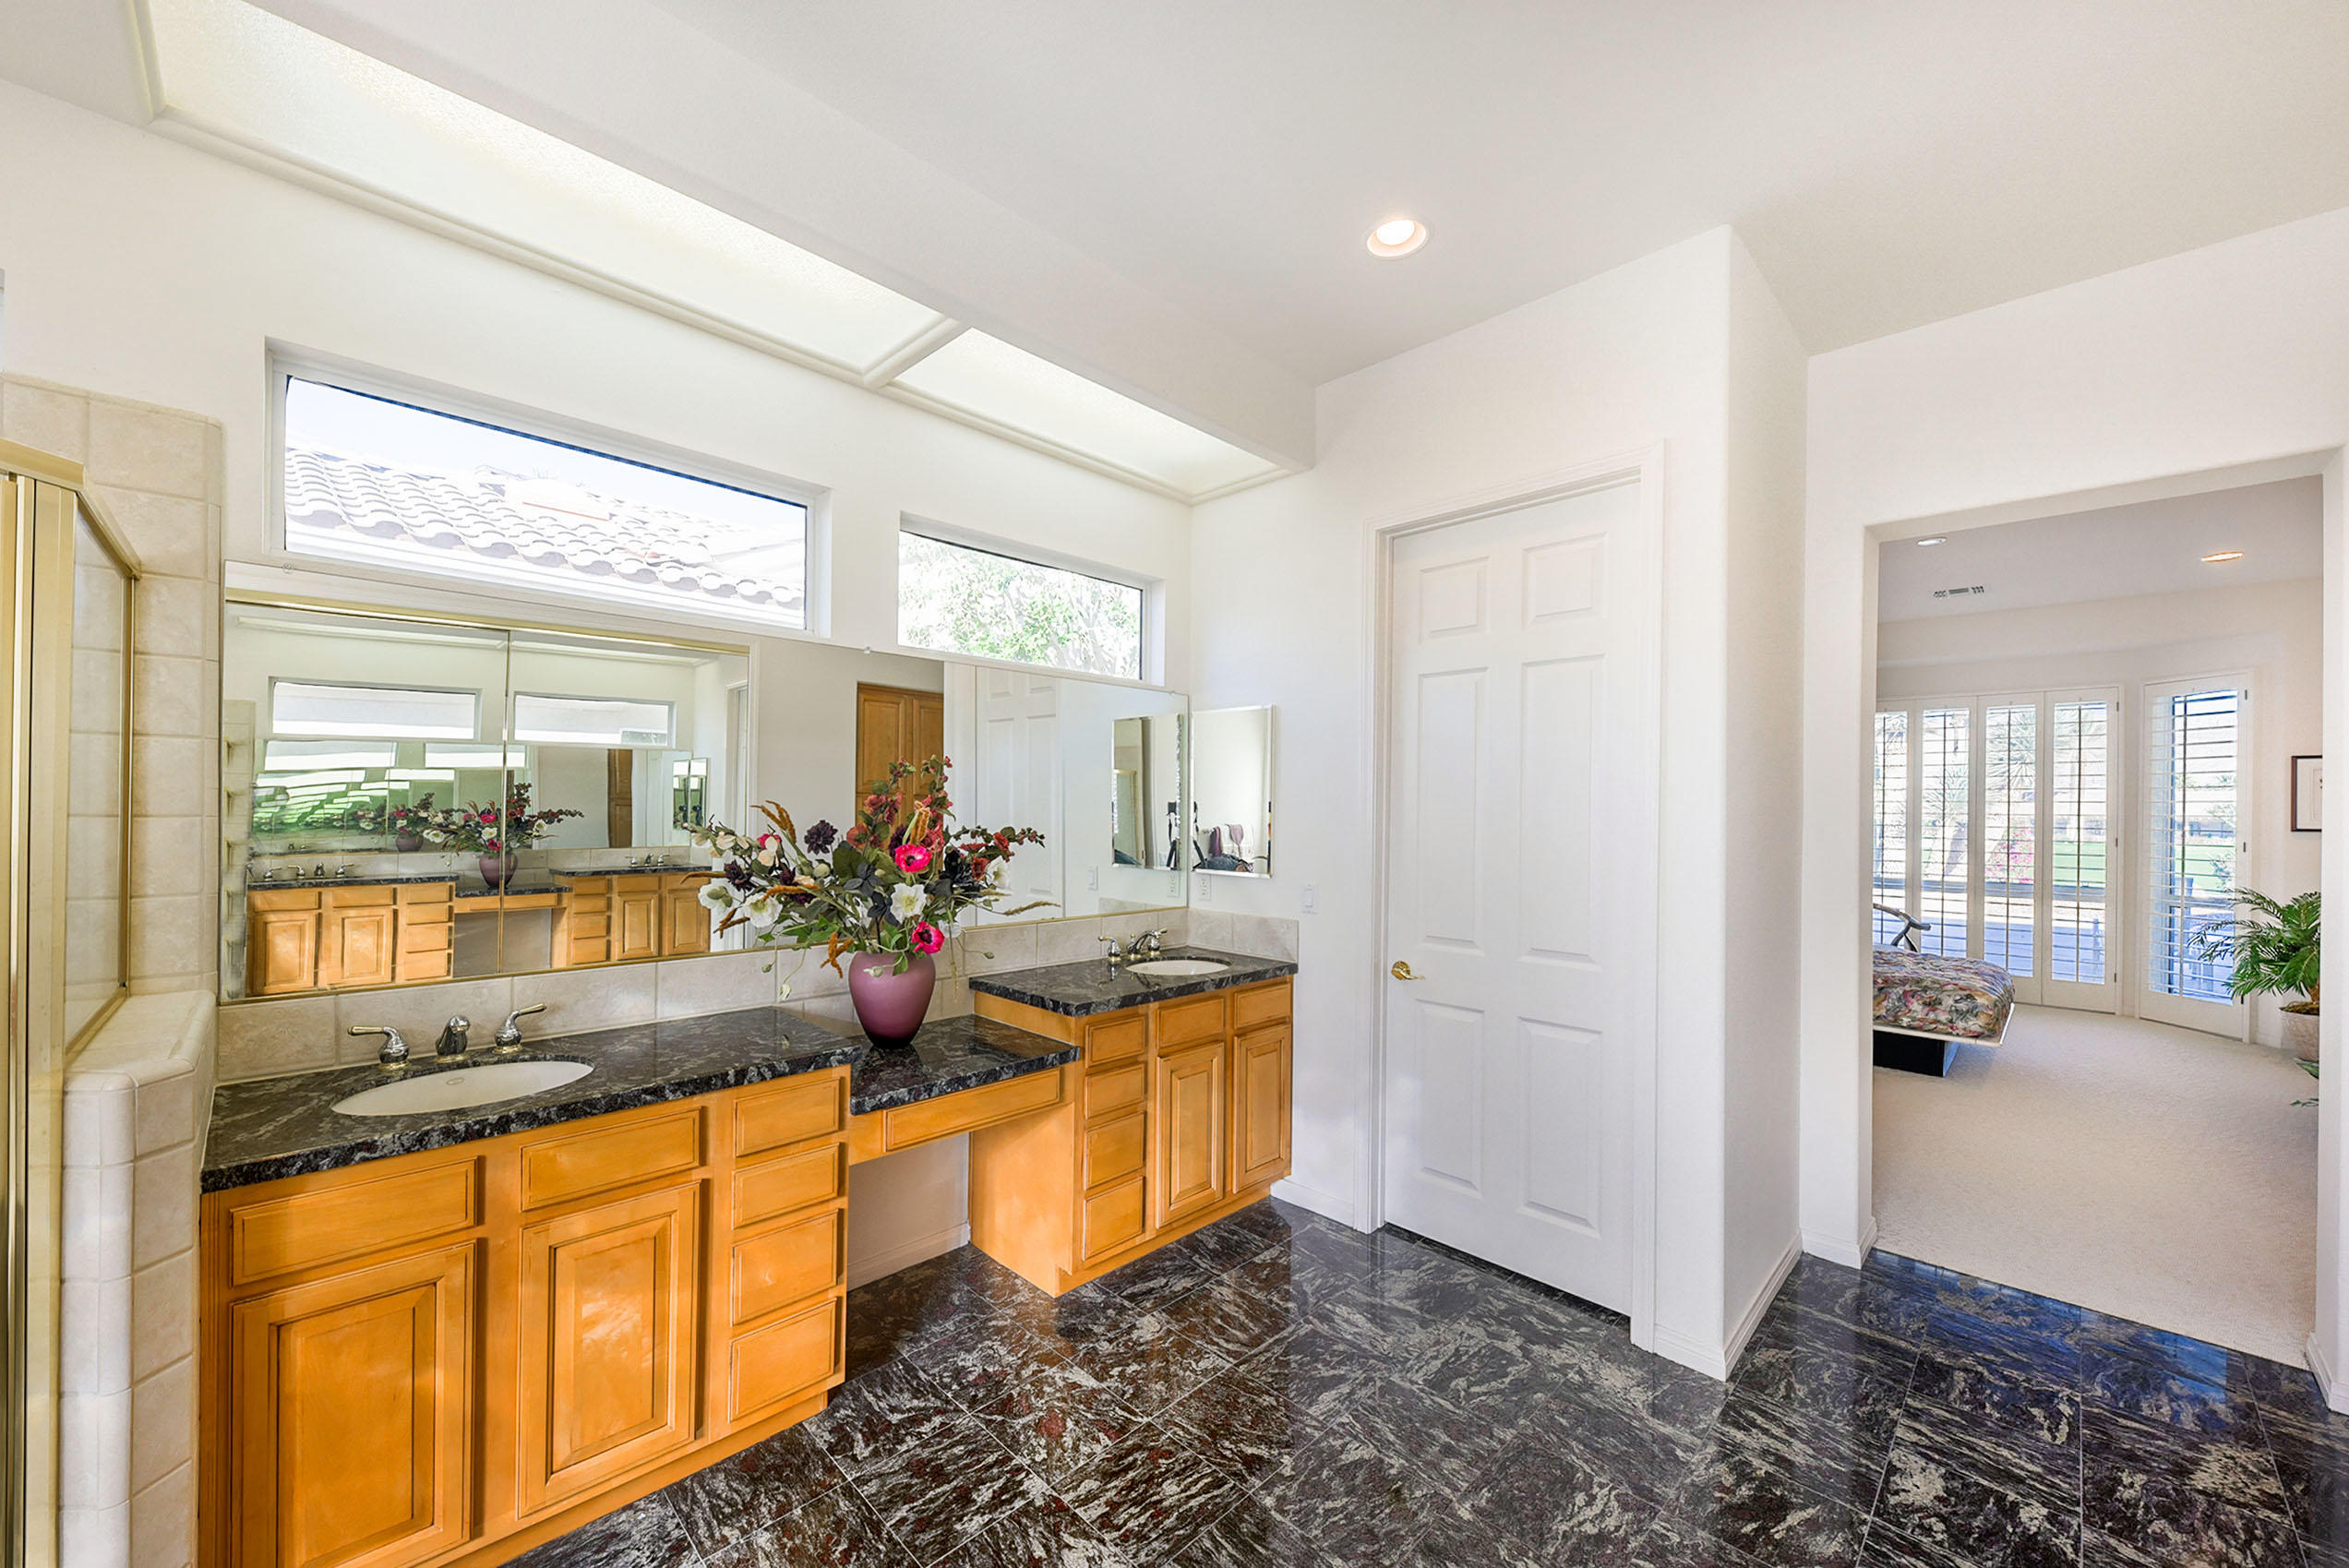 78376 Hollister Drive, Palm Desert, California 92211, 3 Bedrooms Bedrooms, ,3 BathroomsBathrooms,Residential,For Sale,78376 Hollister Drive,219035402